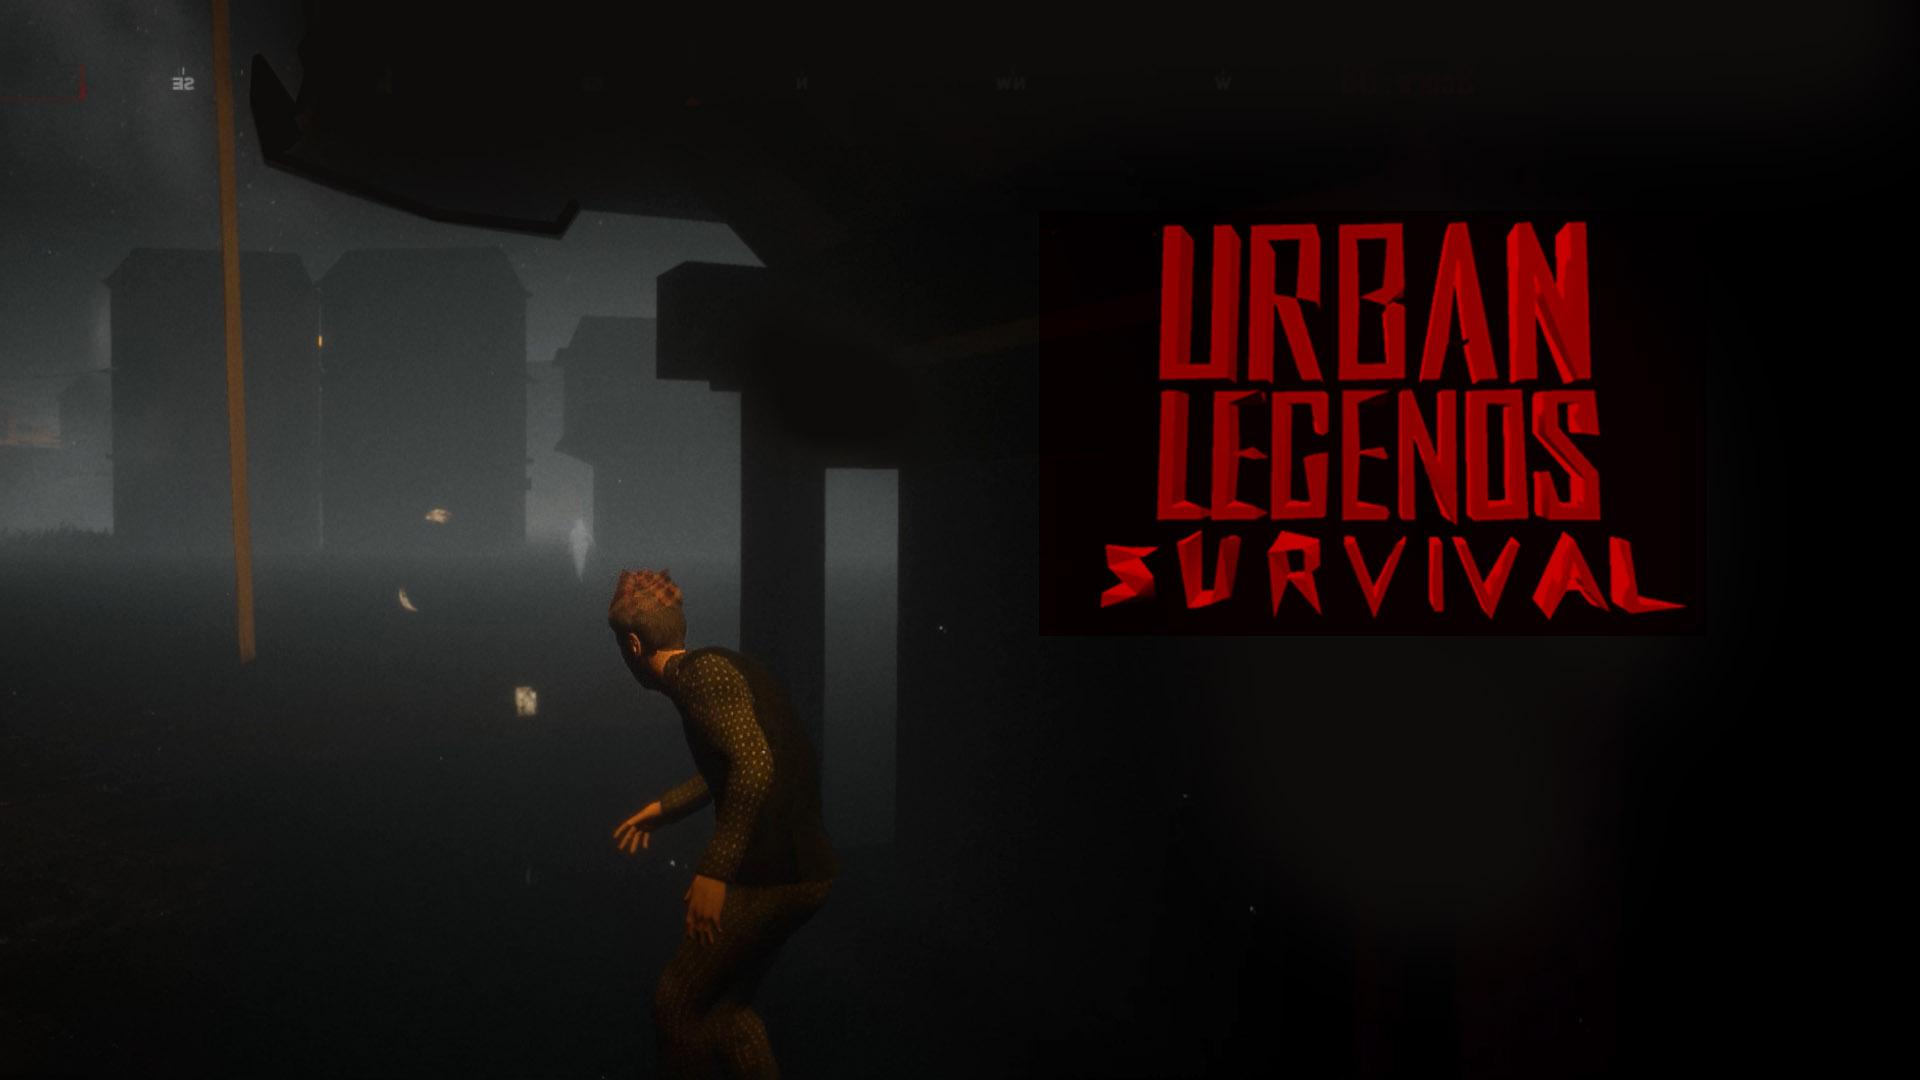 Urban Legends - Survival captura de tela 1